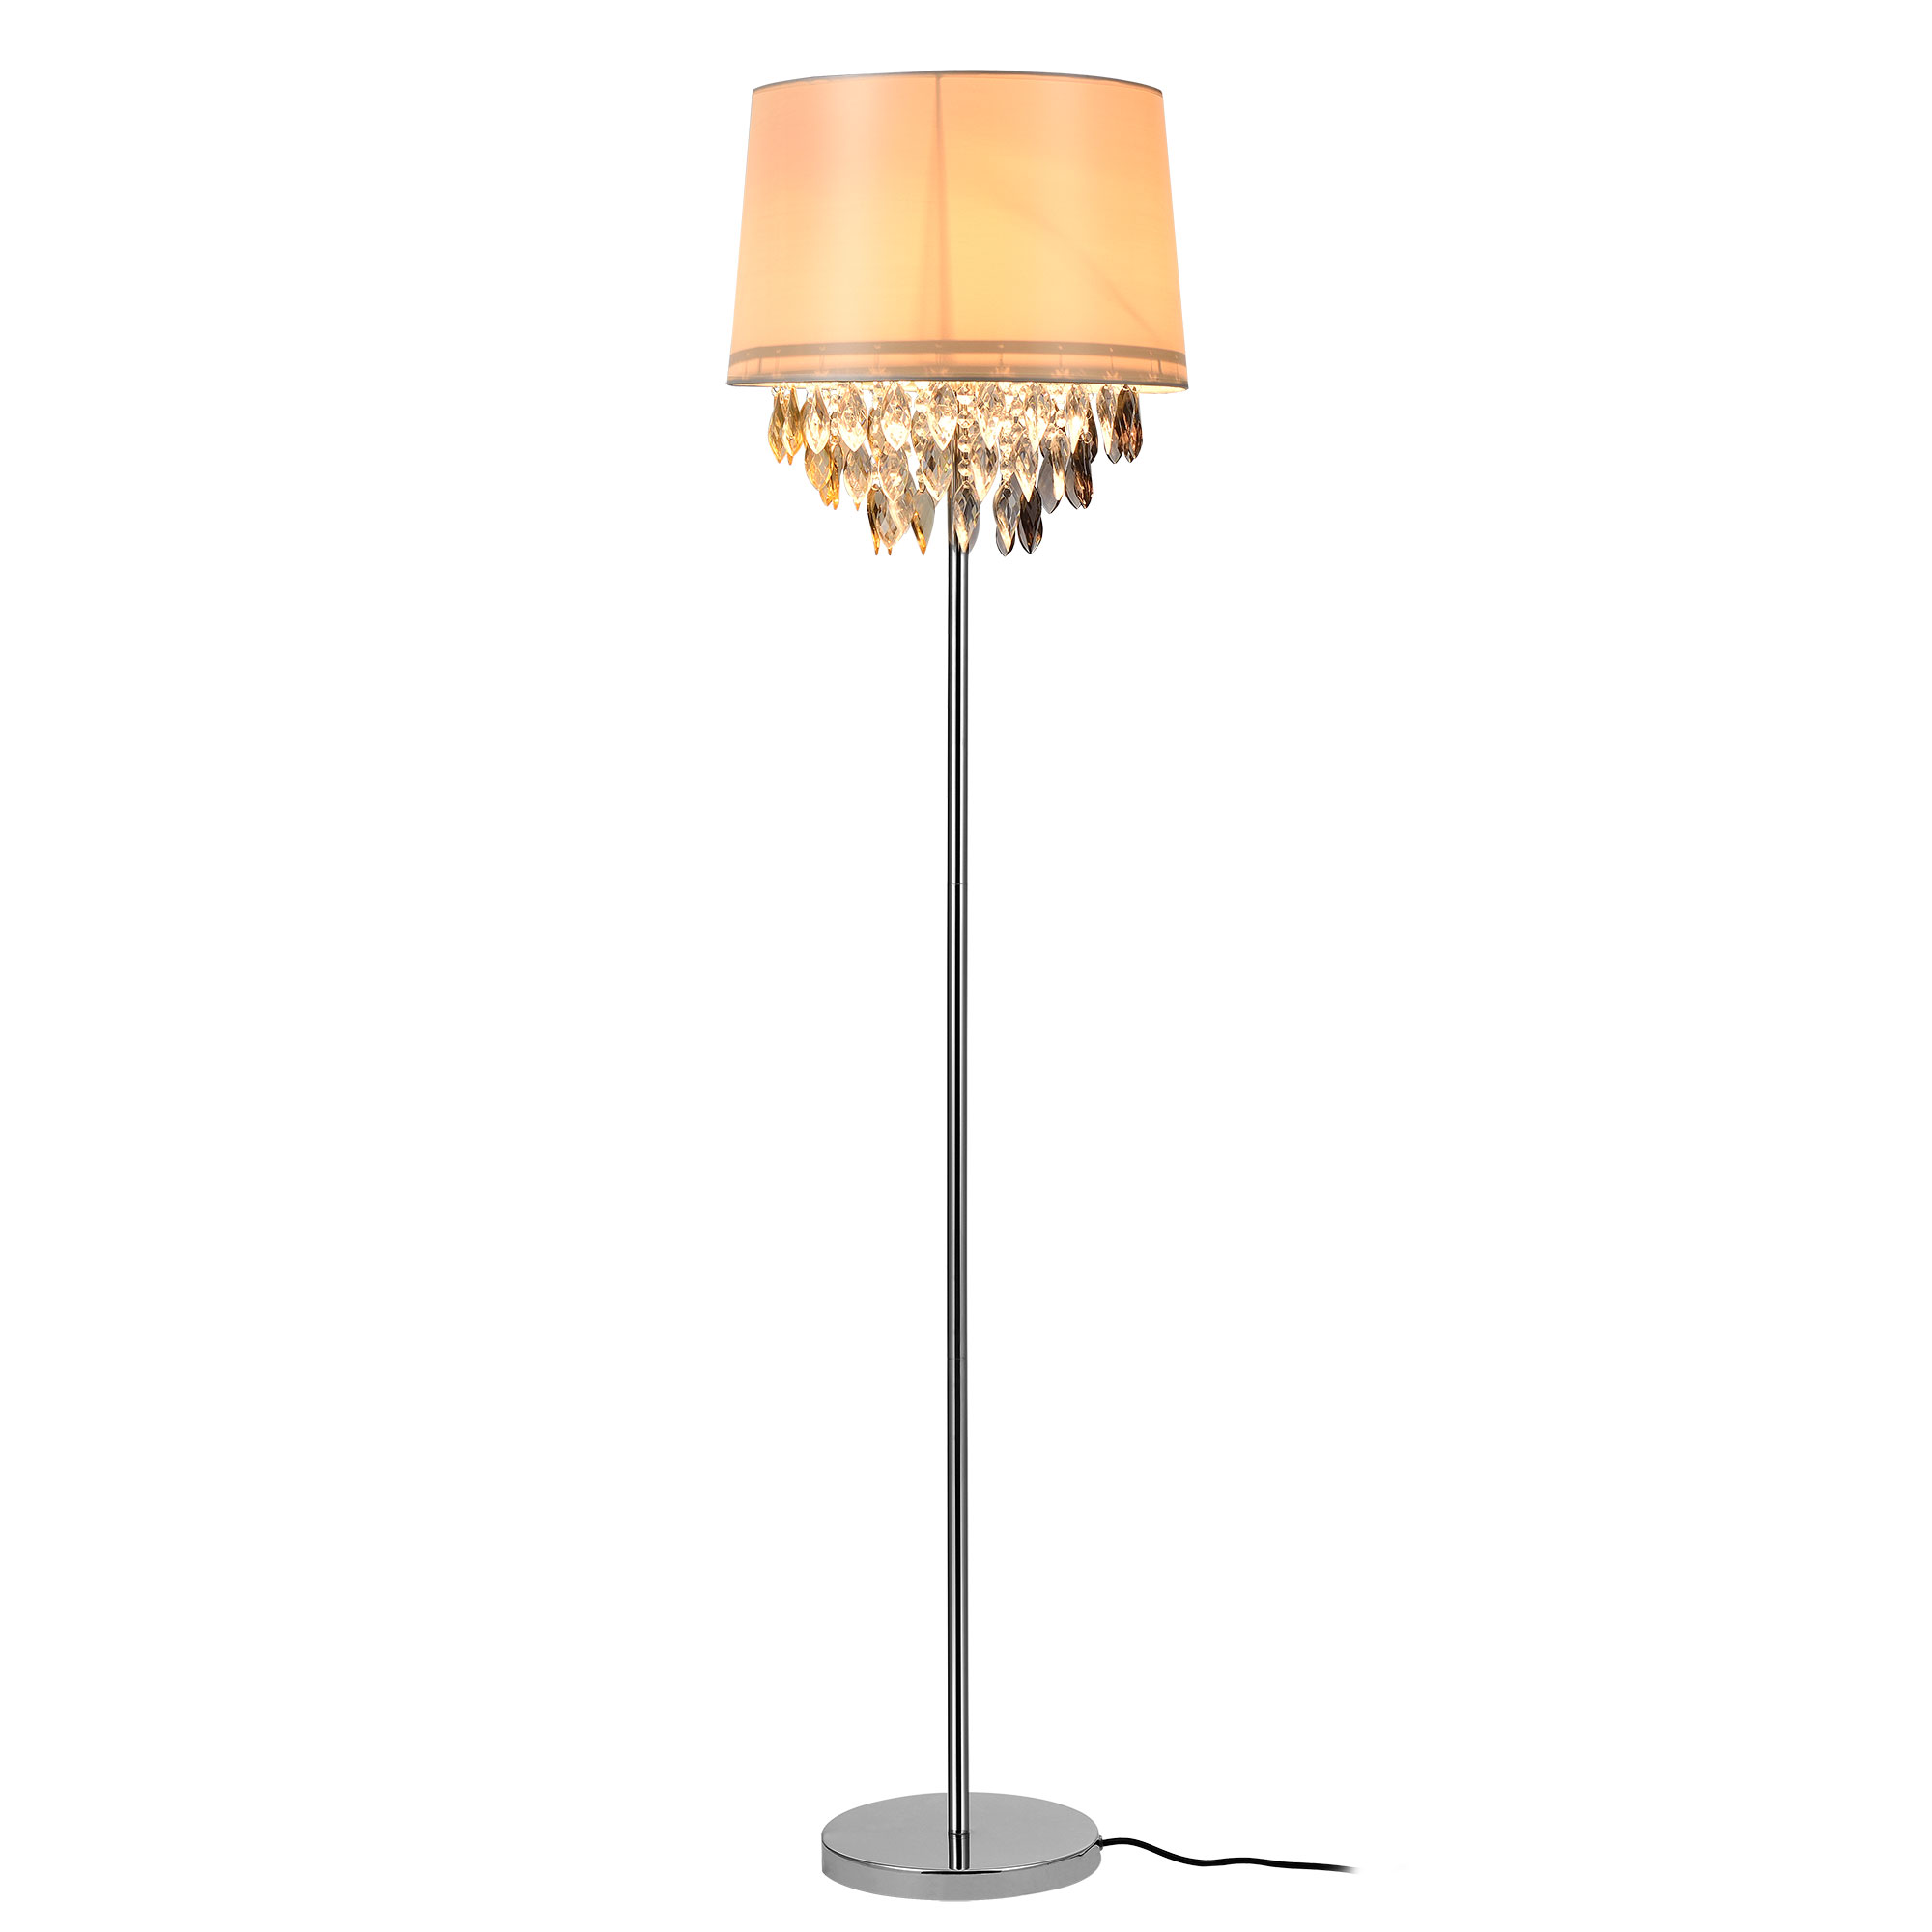 luxpro lampadaire lampadaire lampe lampadaire lampe lumi re de salon cristal ebay. Black Bedroom Furniture Sets. Home Design Ideas